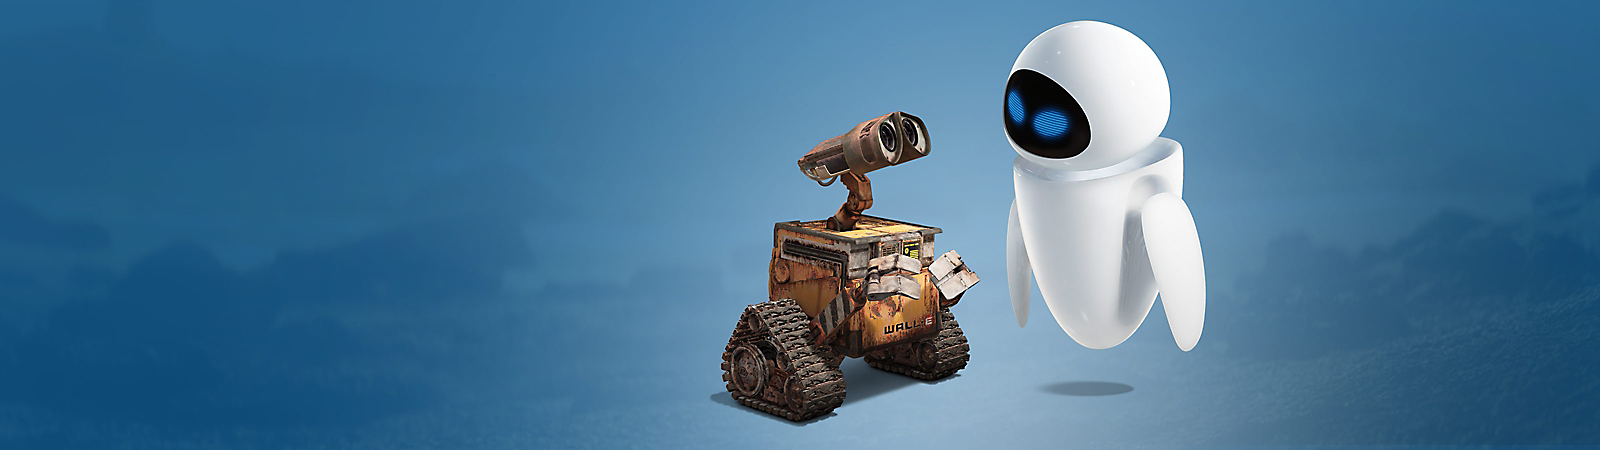 Background image of WALL-E